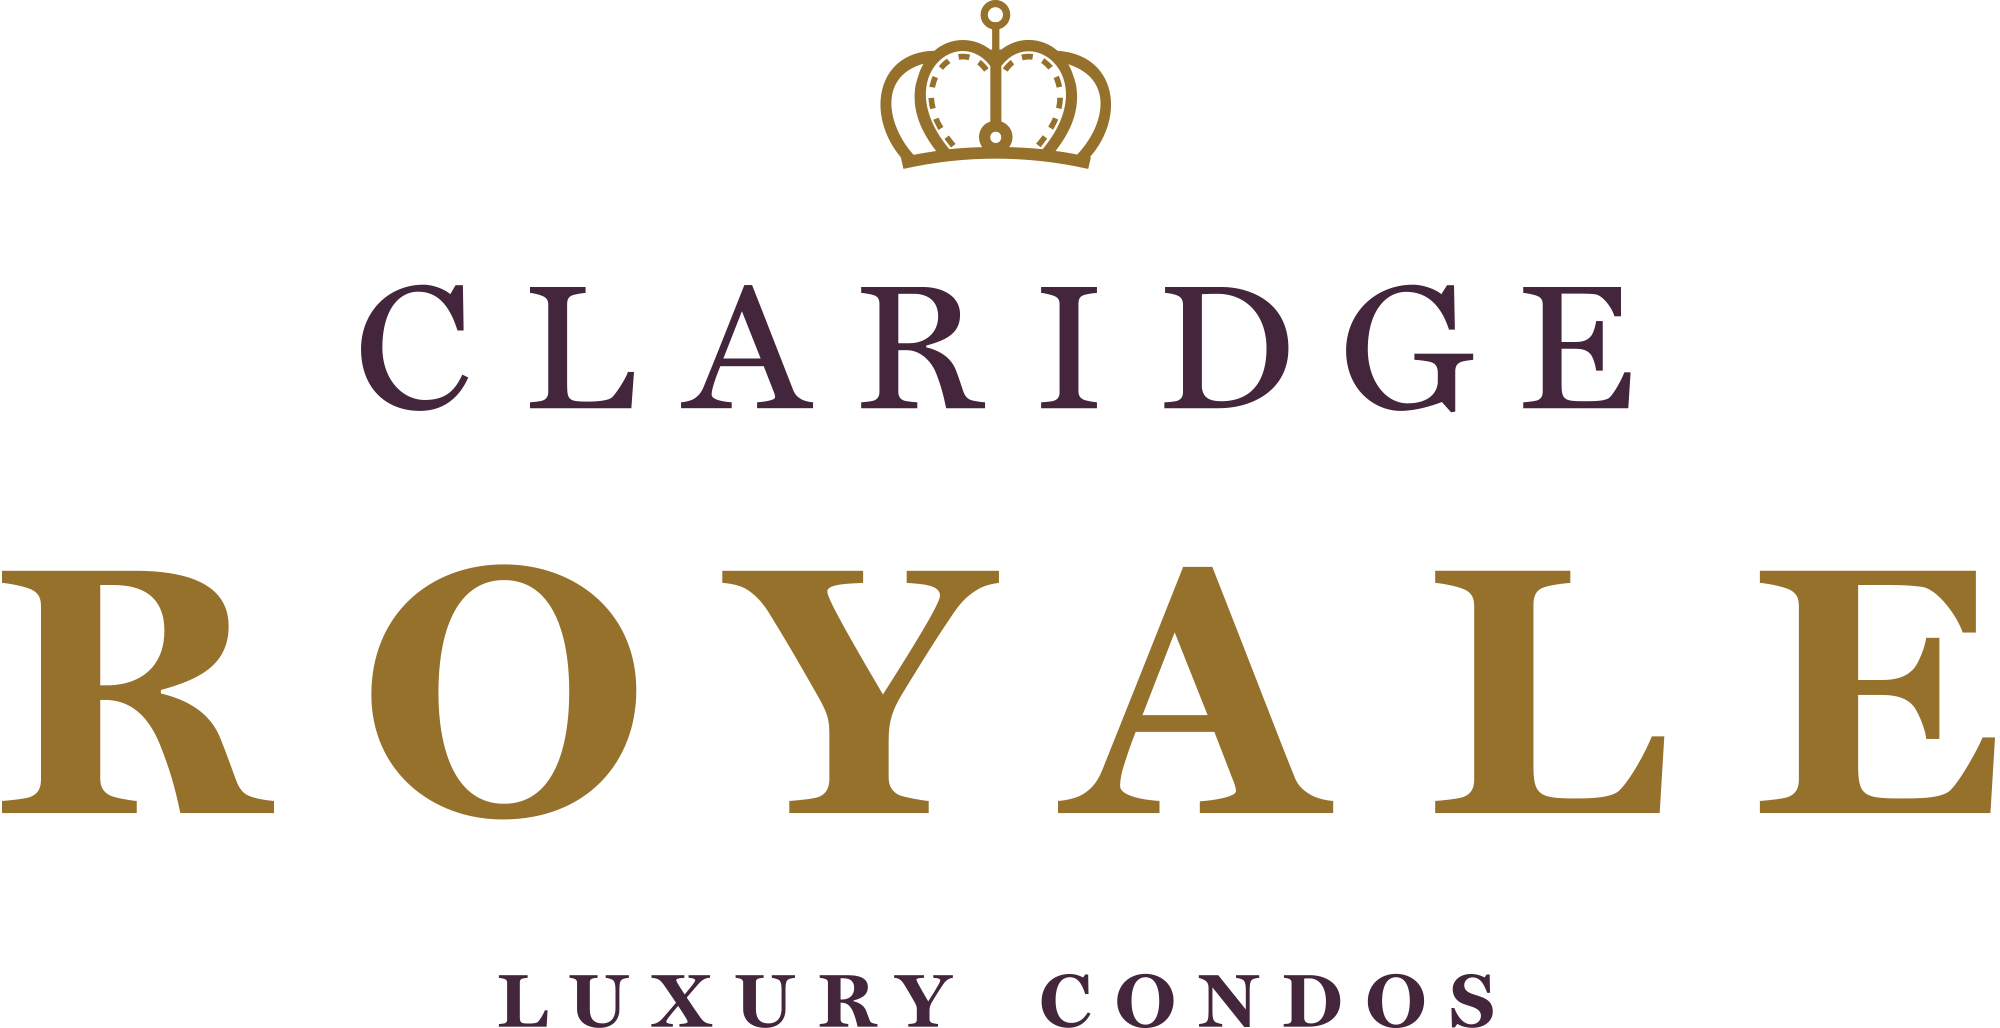 Claridge Royale Logo